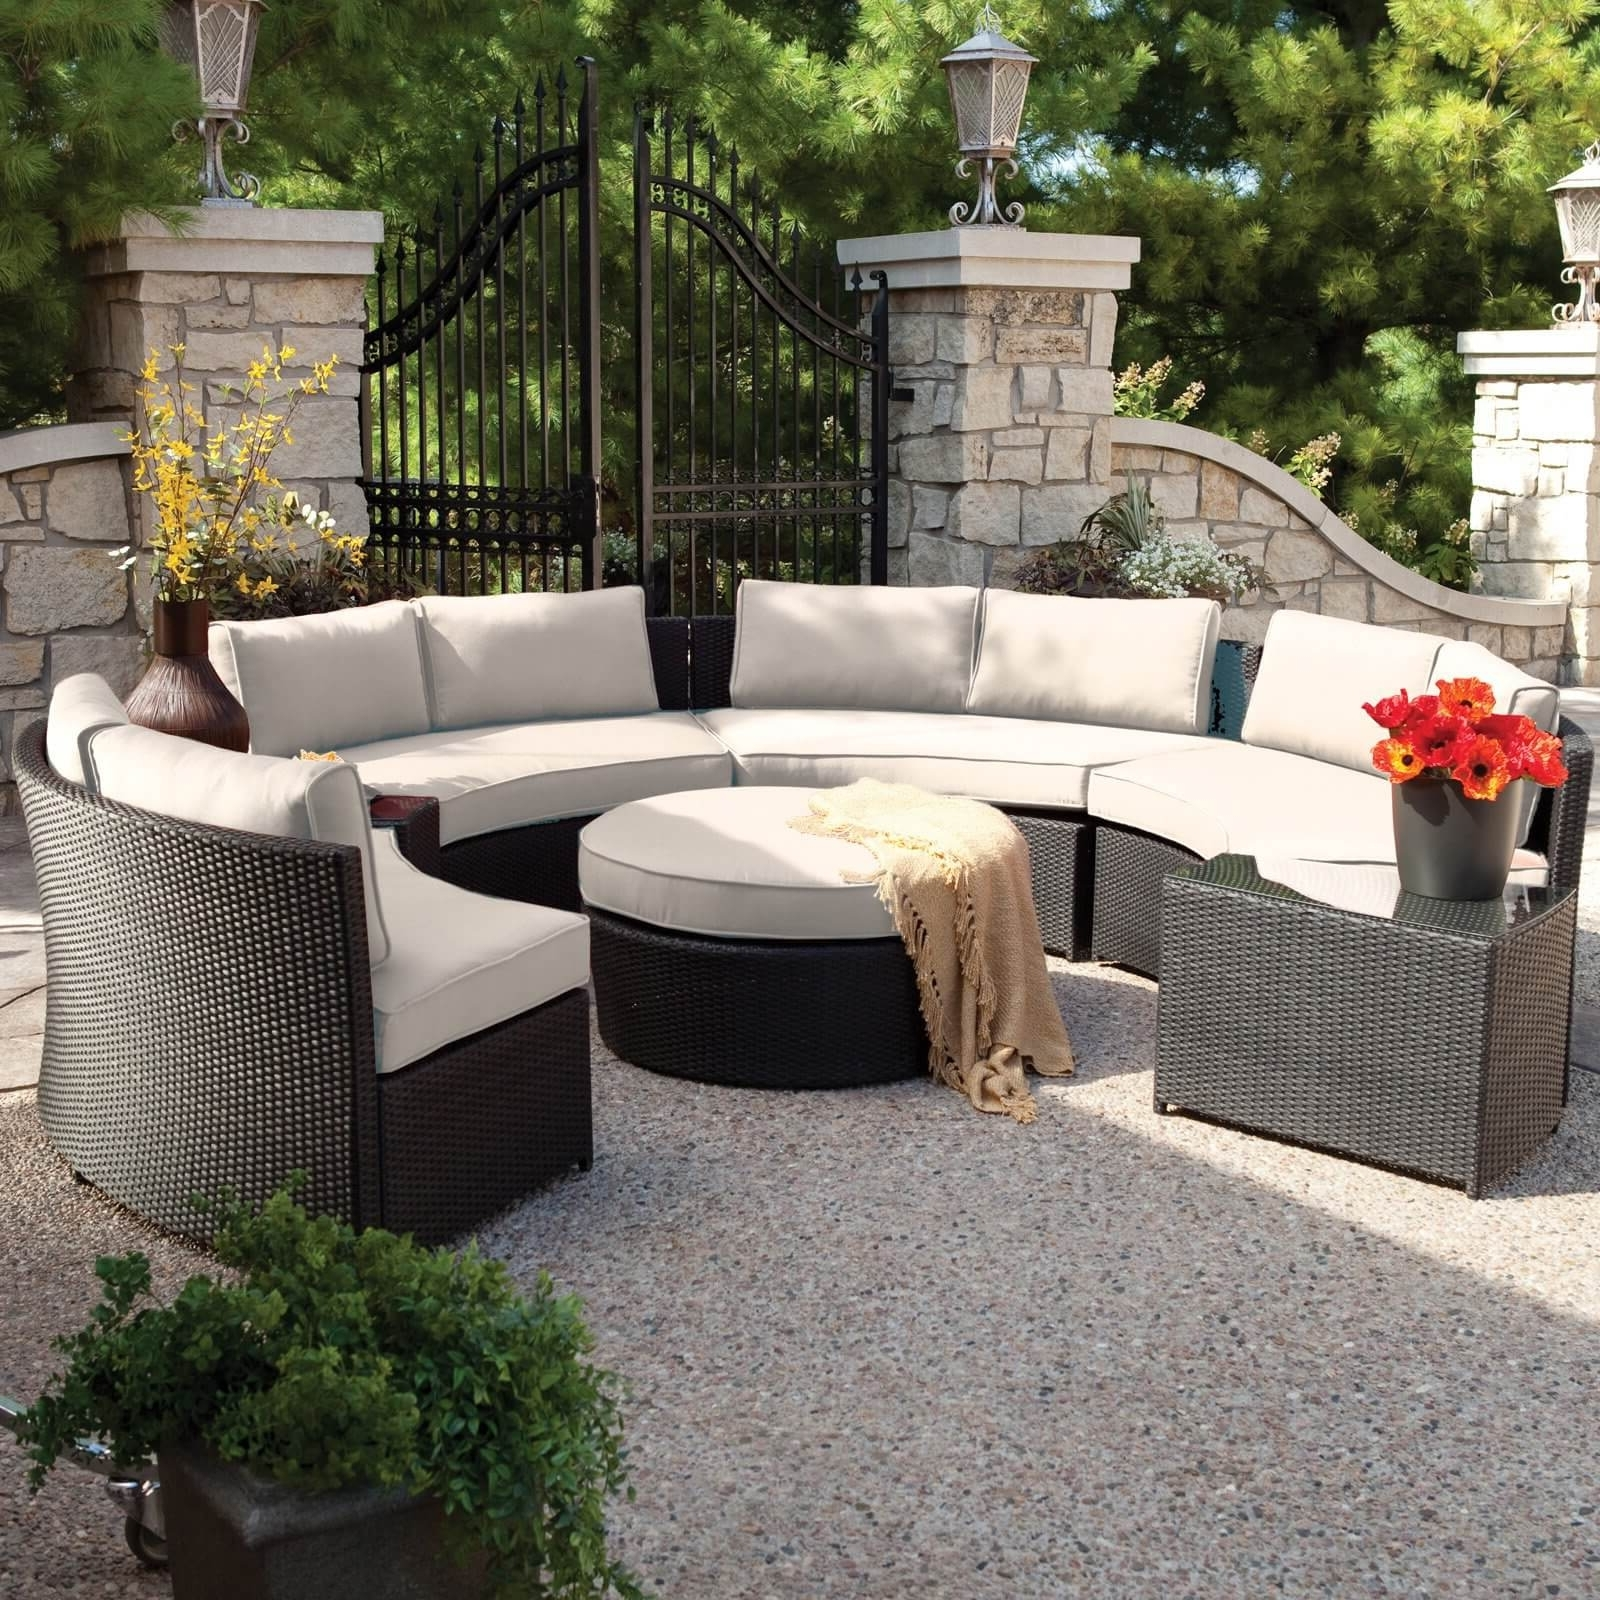 Most Popular Patio : Gray Veracruz Outdoor Sectional Sofa Outdoor Ideas Of White Throughout Conversation Patio Sets With Outdoor Sectionals (View 3 of 20)